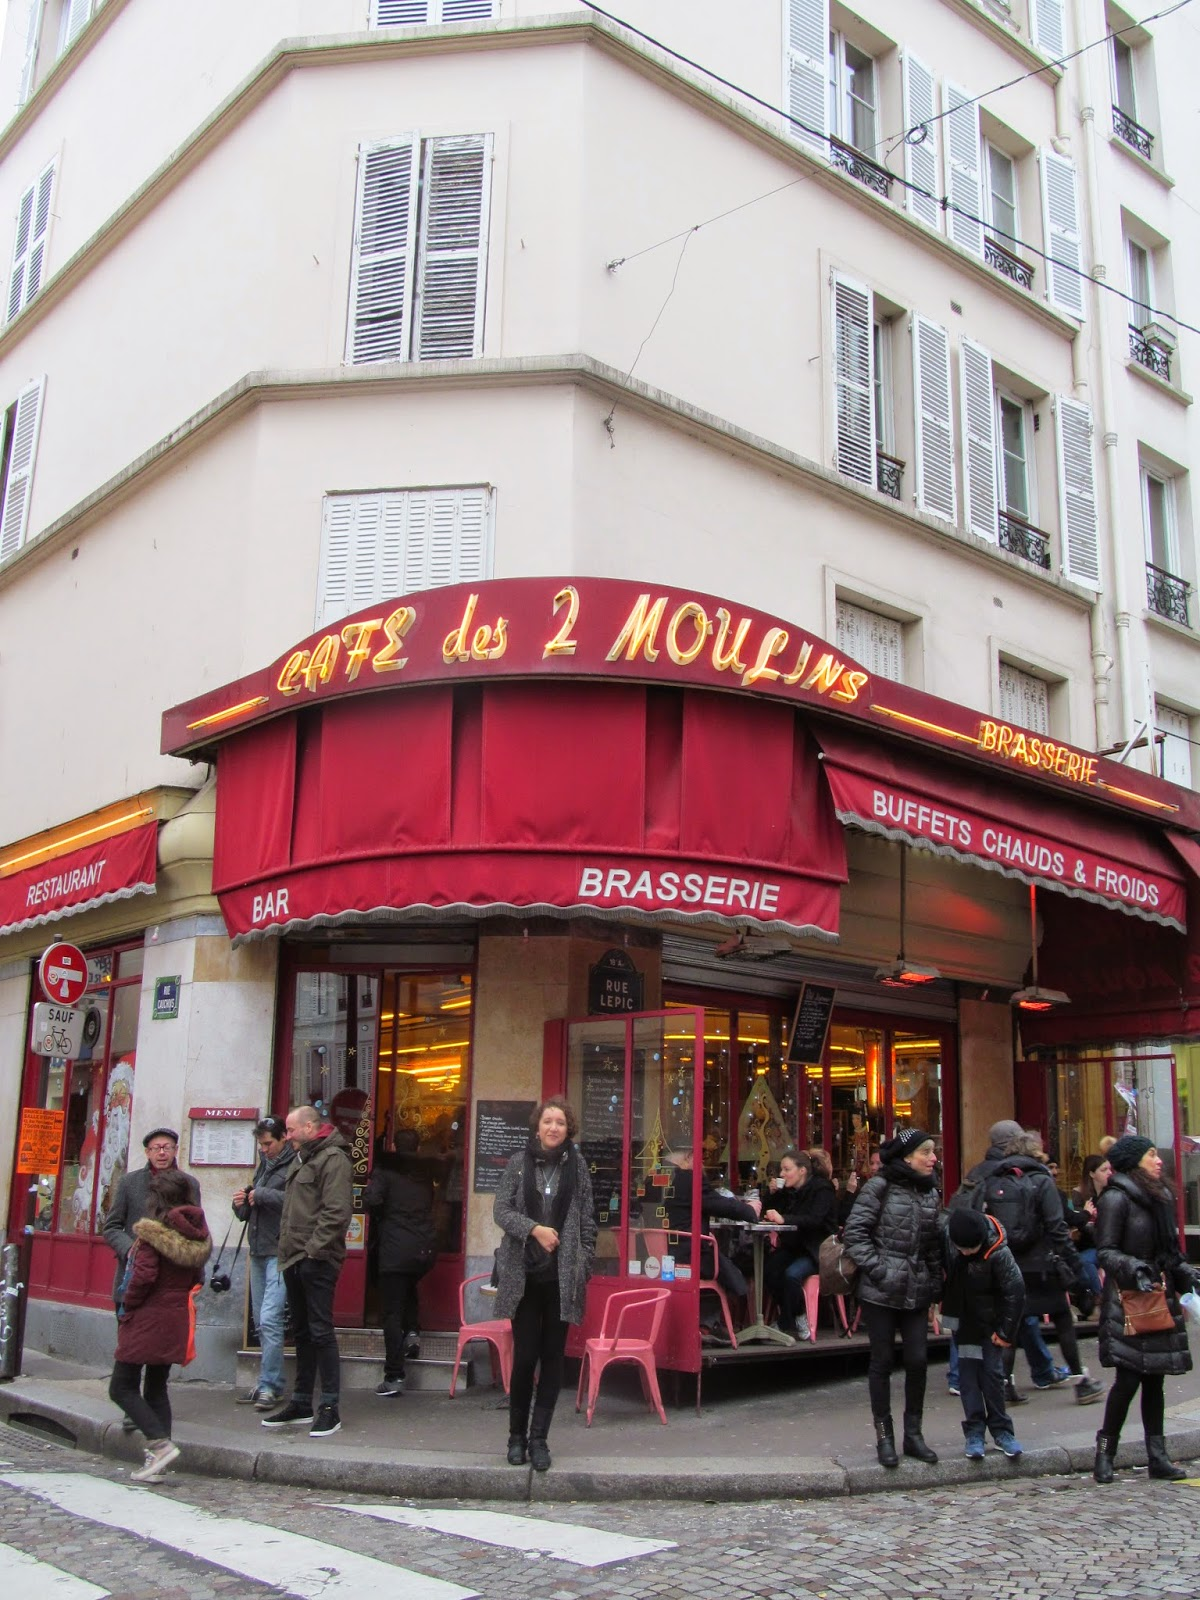 outside amelie cafe paris